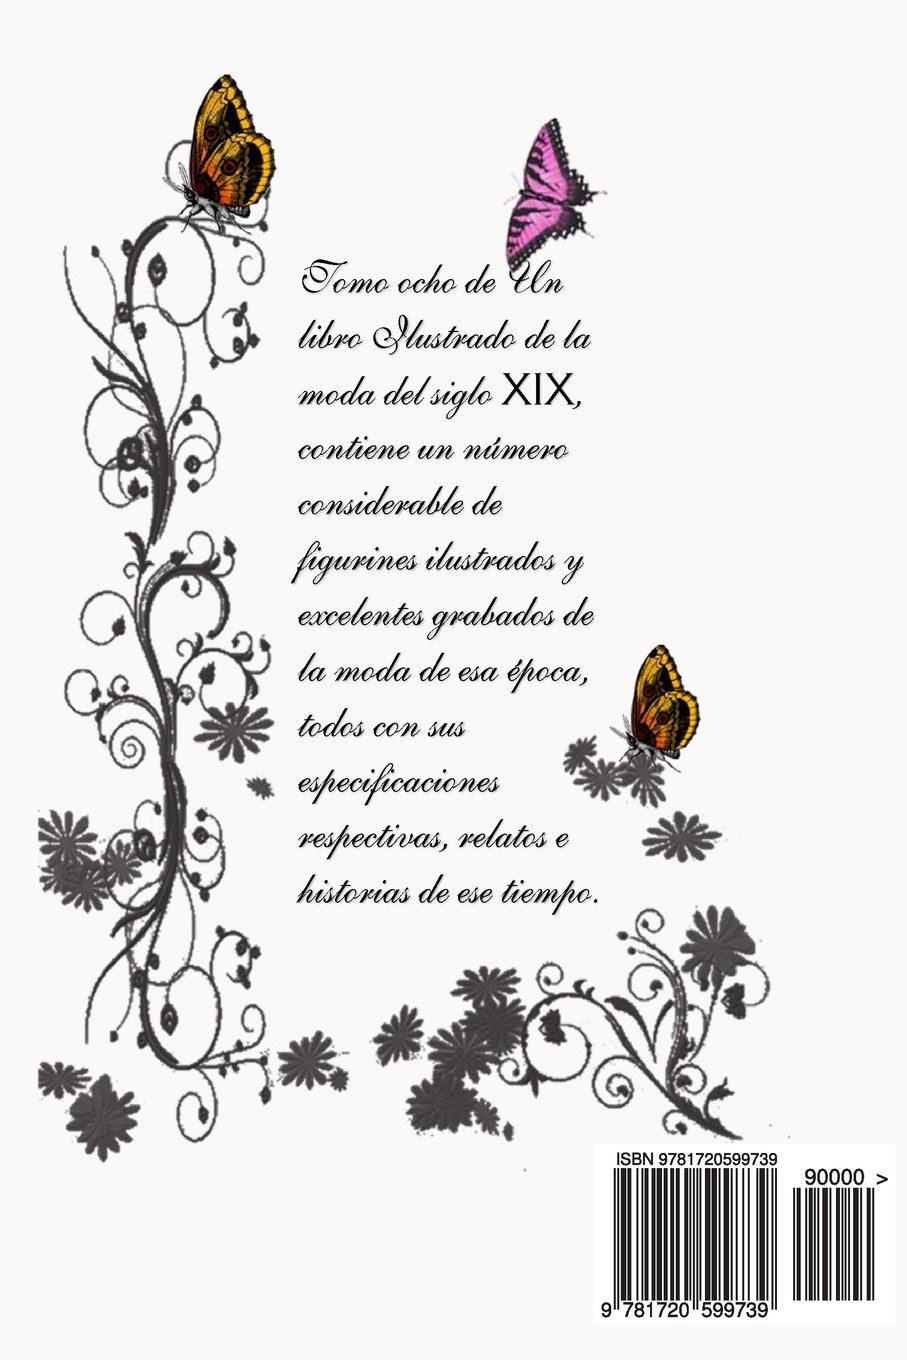 Un Libro de Modas Del Siglo XIX (Volume 8) (Spanish Edition): Hector R Briceno: 9781720599739: Amazon.com: Books